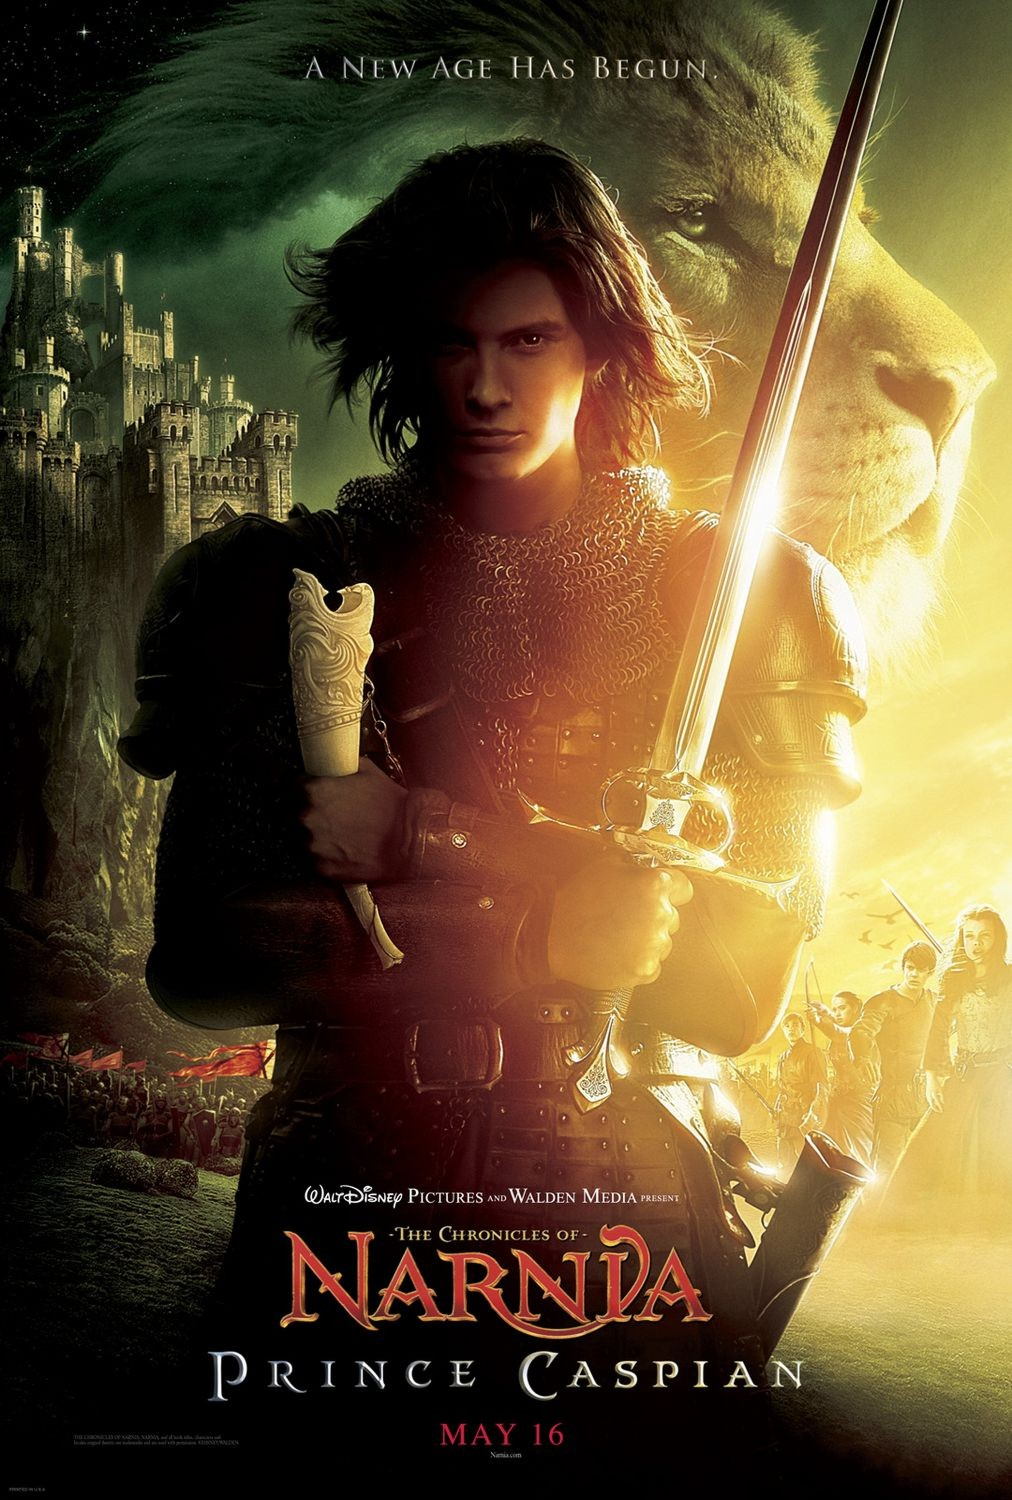 https://i2.wp.com/www.scifimoviepage.com/upcoming/photos/prince_caspian-poster2.jpg